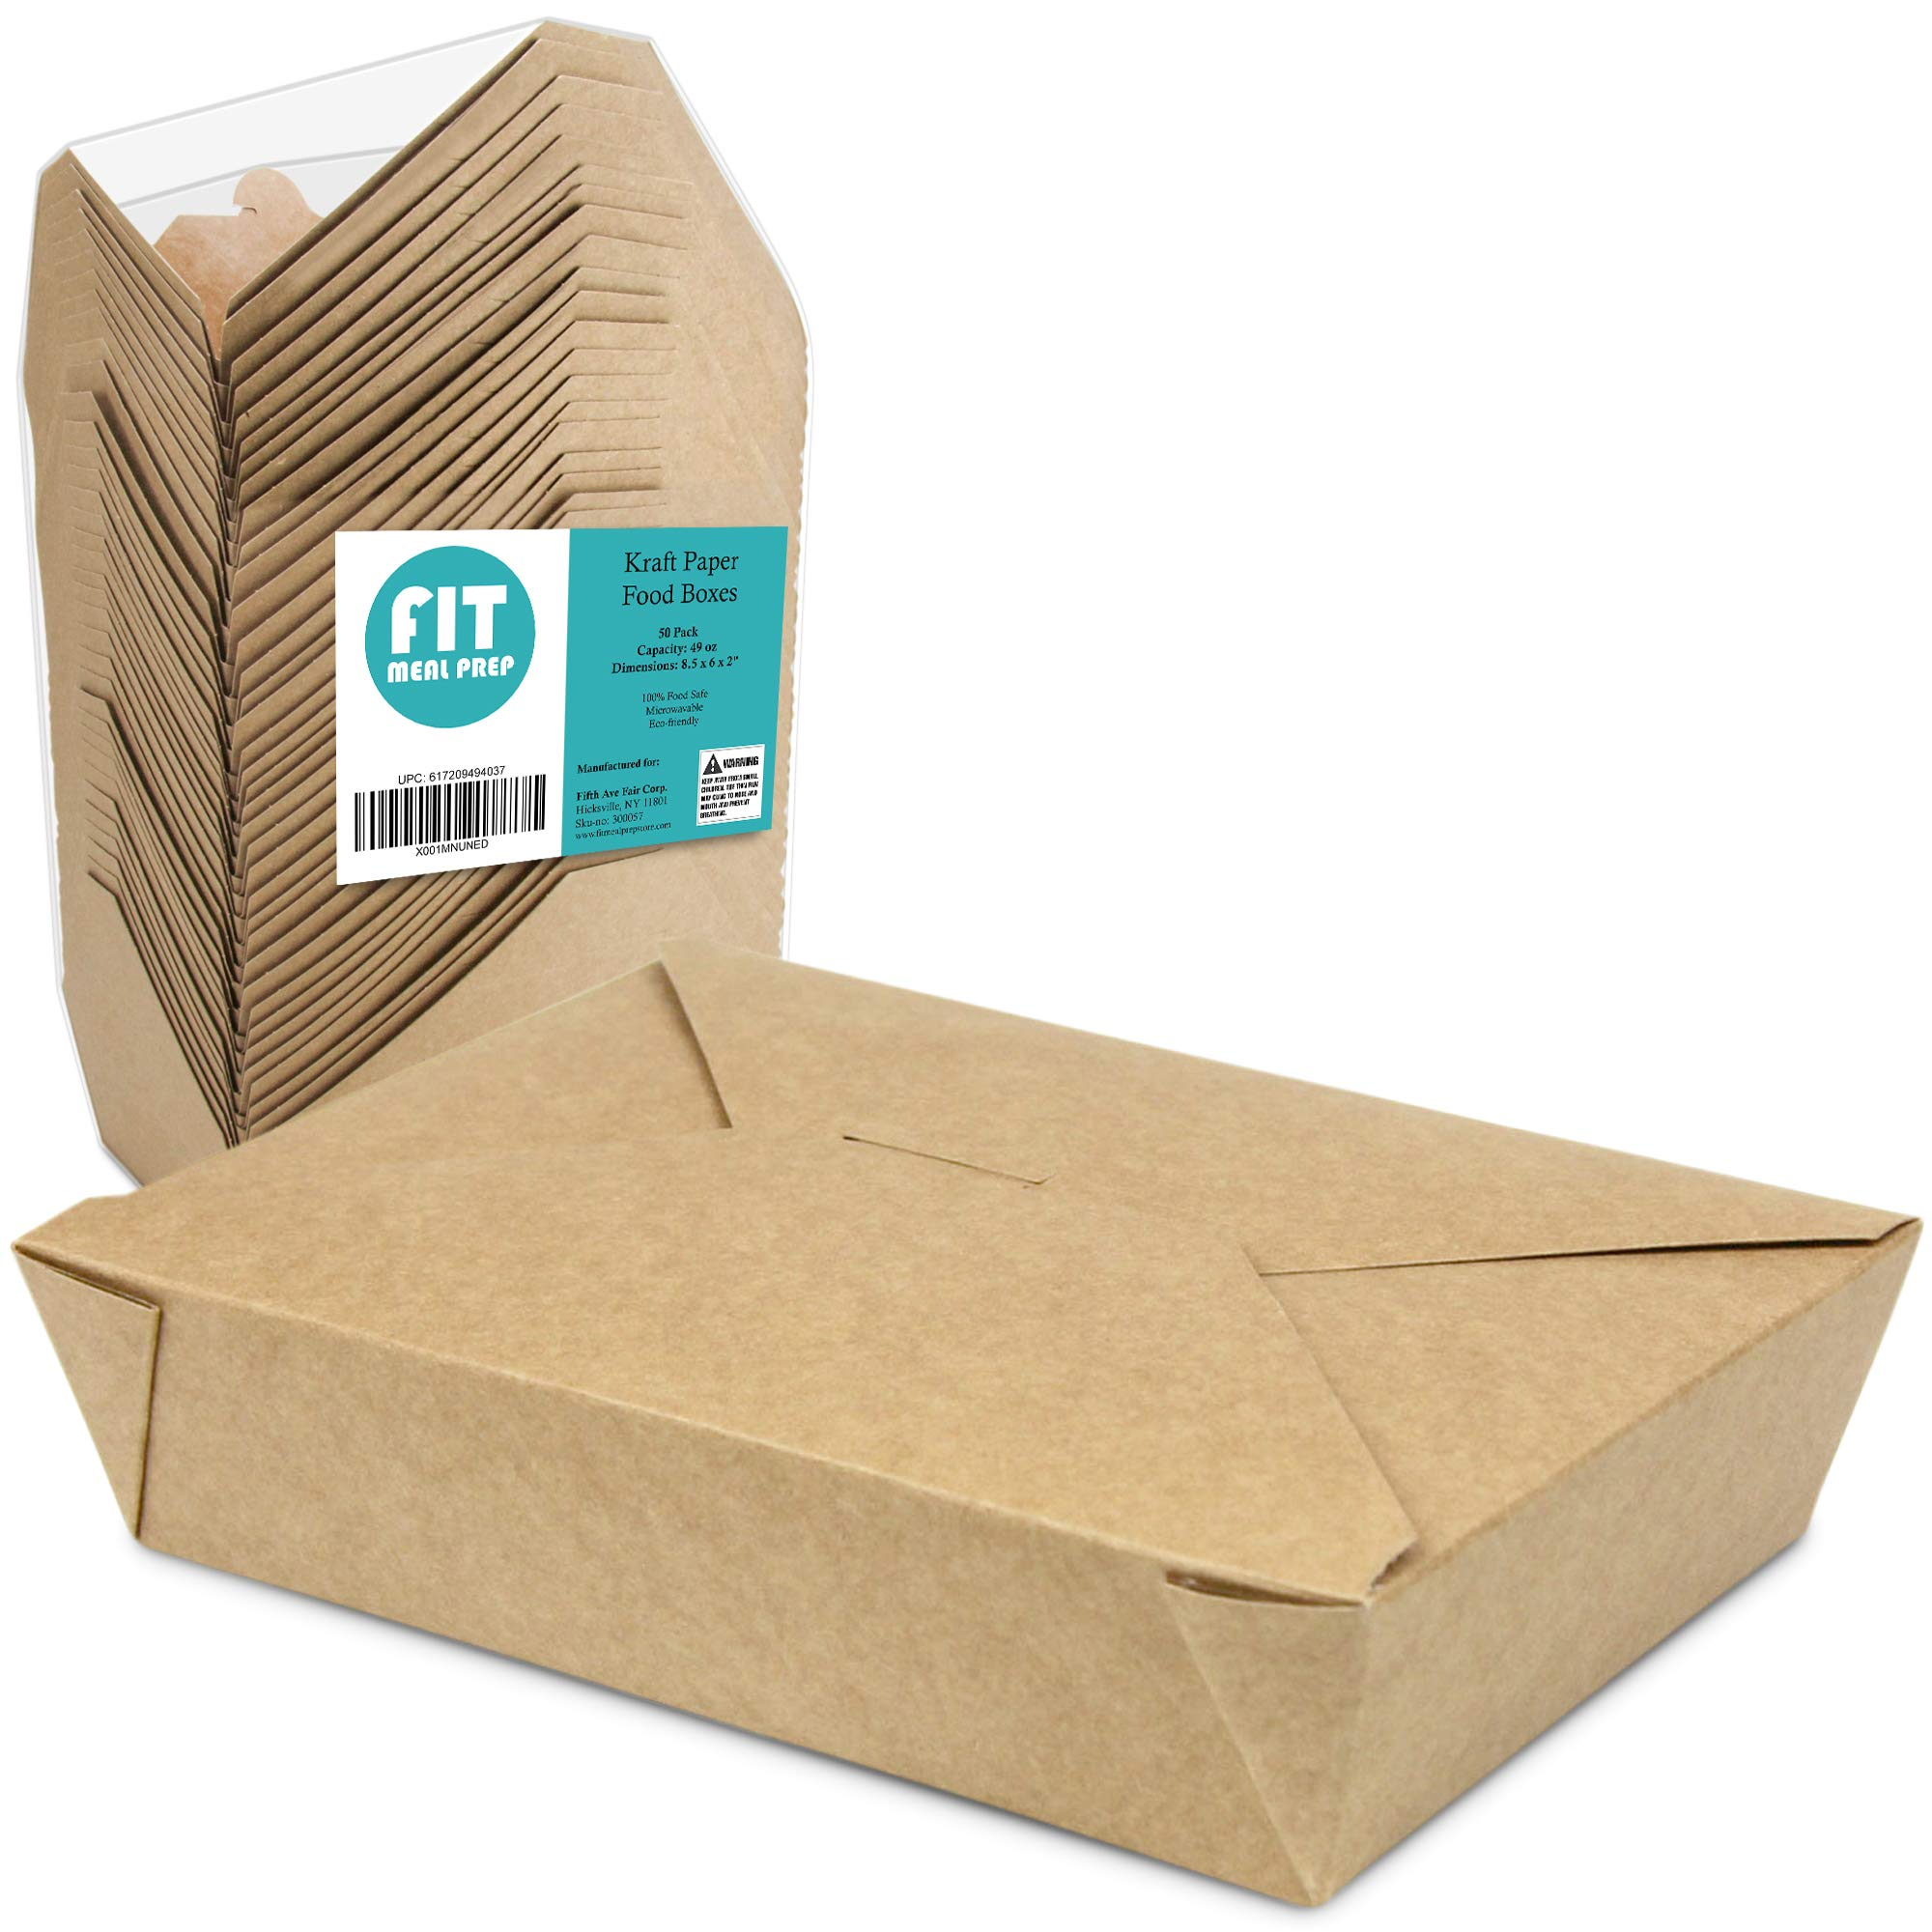 49 OZ 8.5 x 6 x 2 Disposable Paper Take Out Food Containers, Microwaveble Folding Natural Kraft To Go Boxes #2 [50 Pack] by Fit Meal Prep